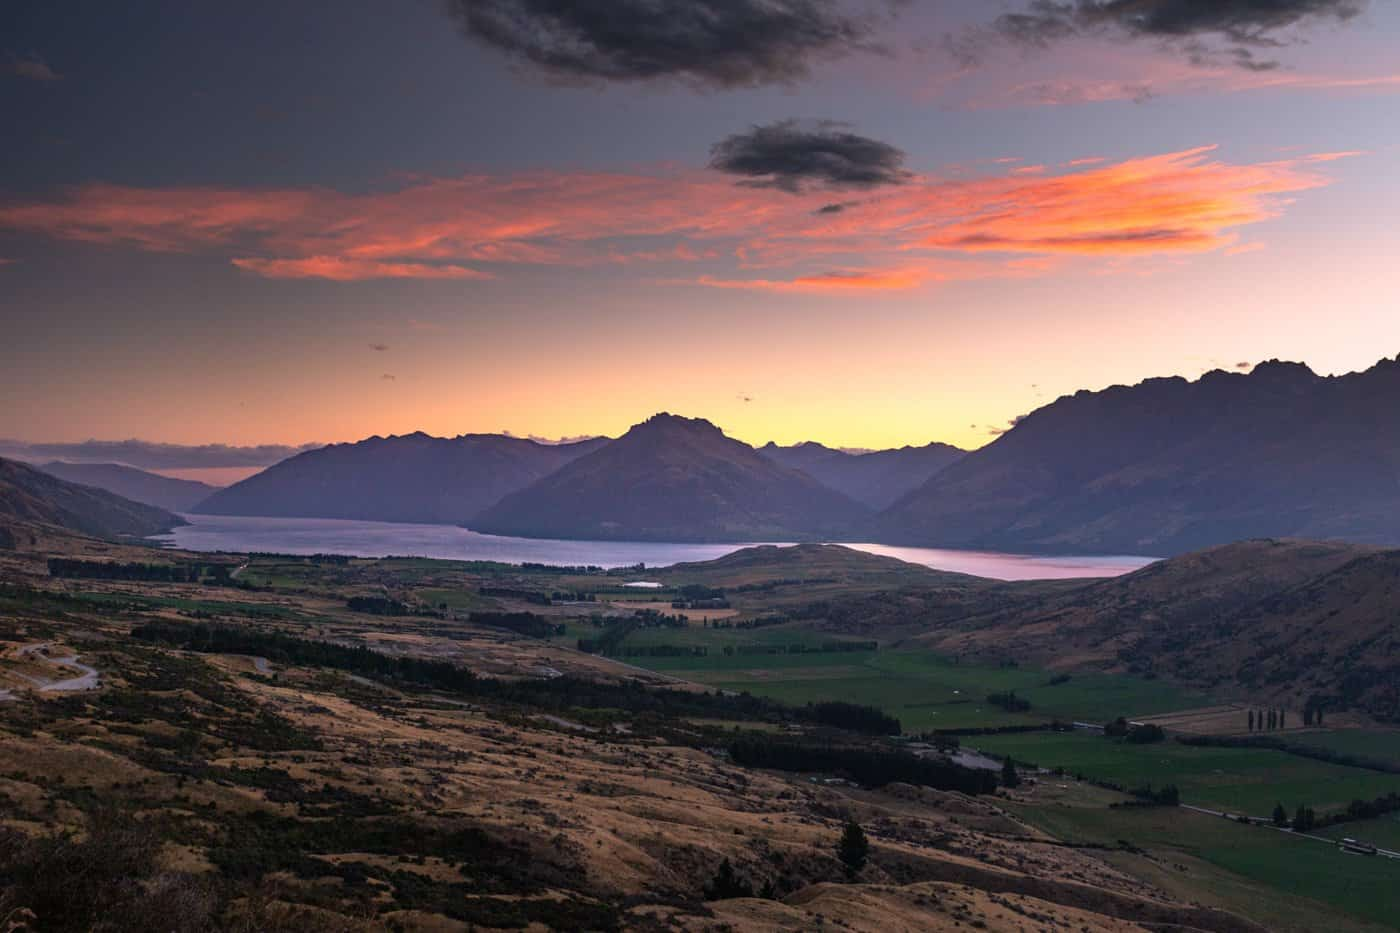 Time permitting, head up the road to The Remarkables and watch sunset over Queenstown.